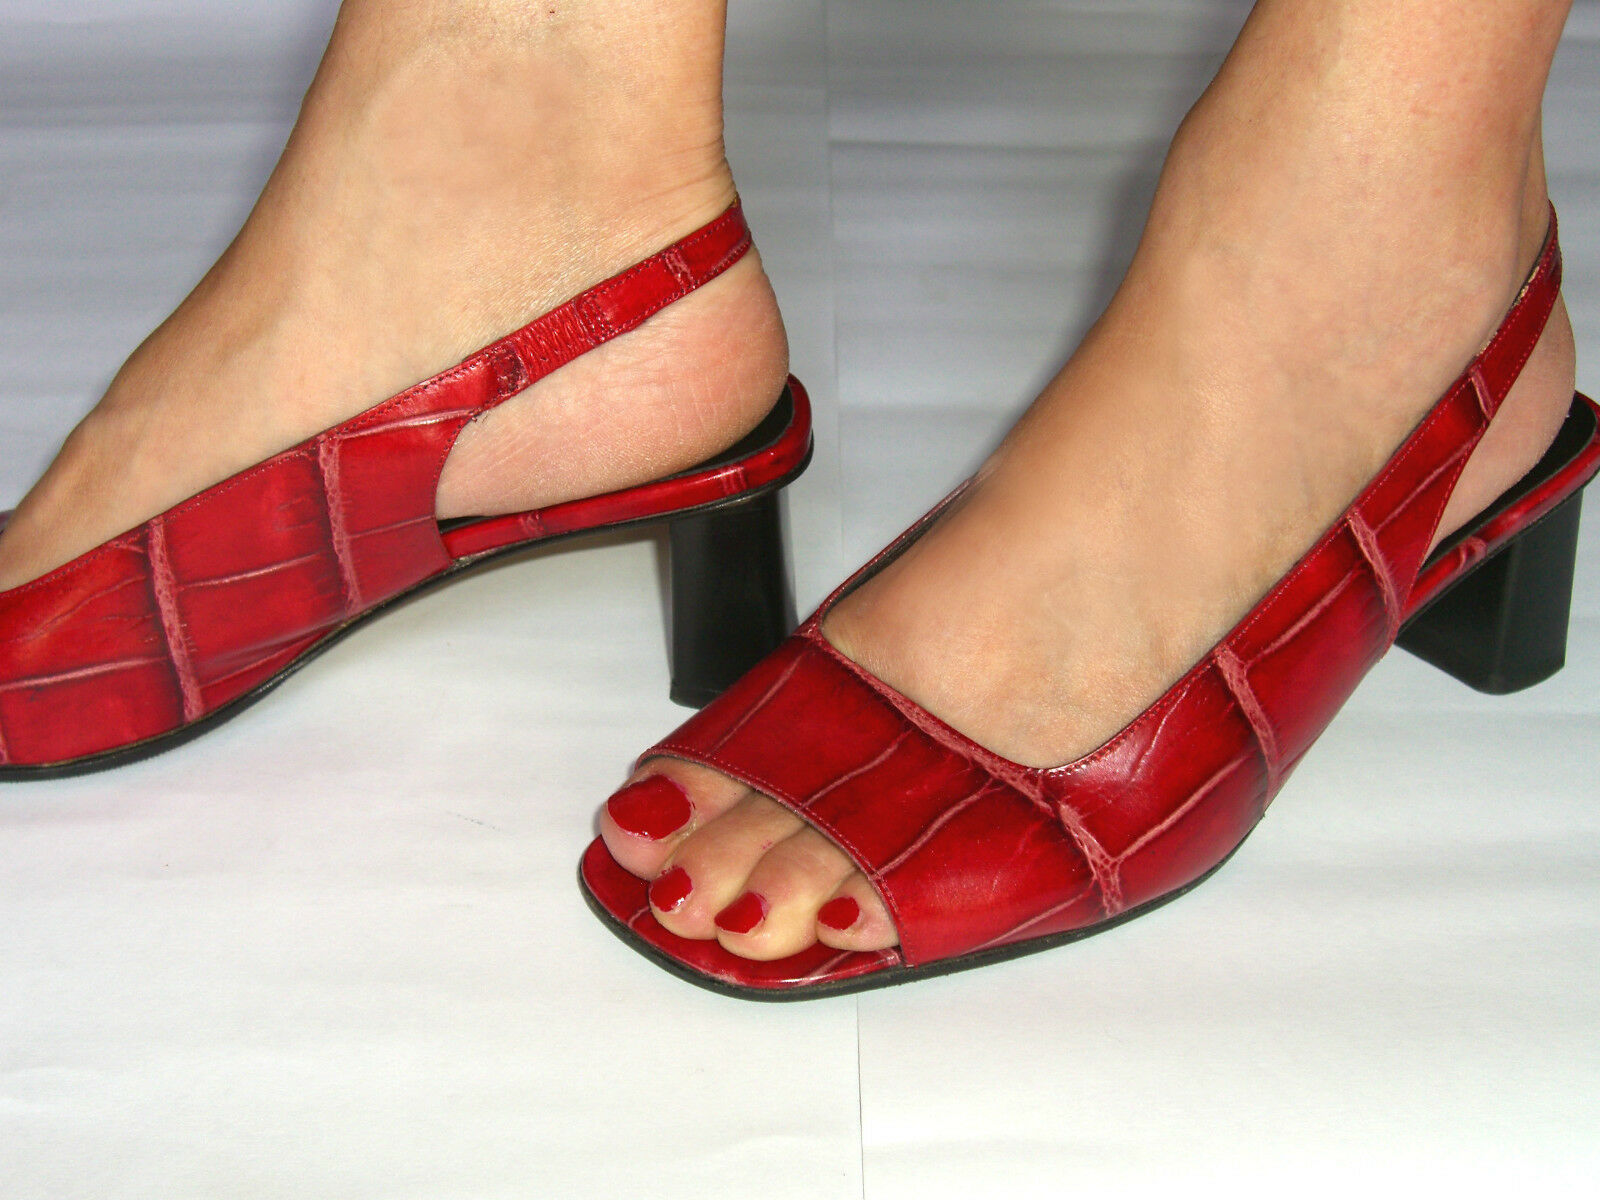 Sandali Femme Vera Pelle Rosso Intenso. Intenso. Rosso LORBAC.37-1/2. Red Leather Woman Sandal. 99a3d7